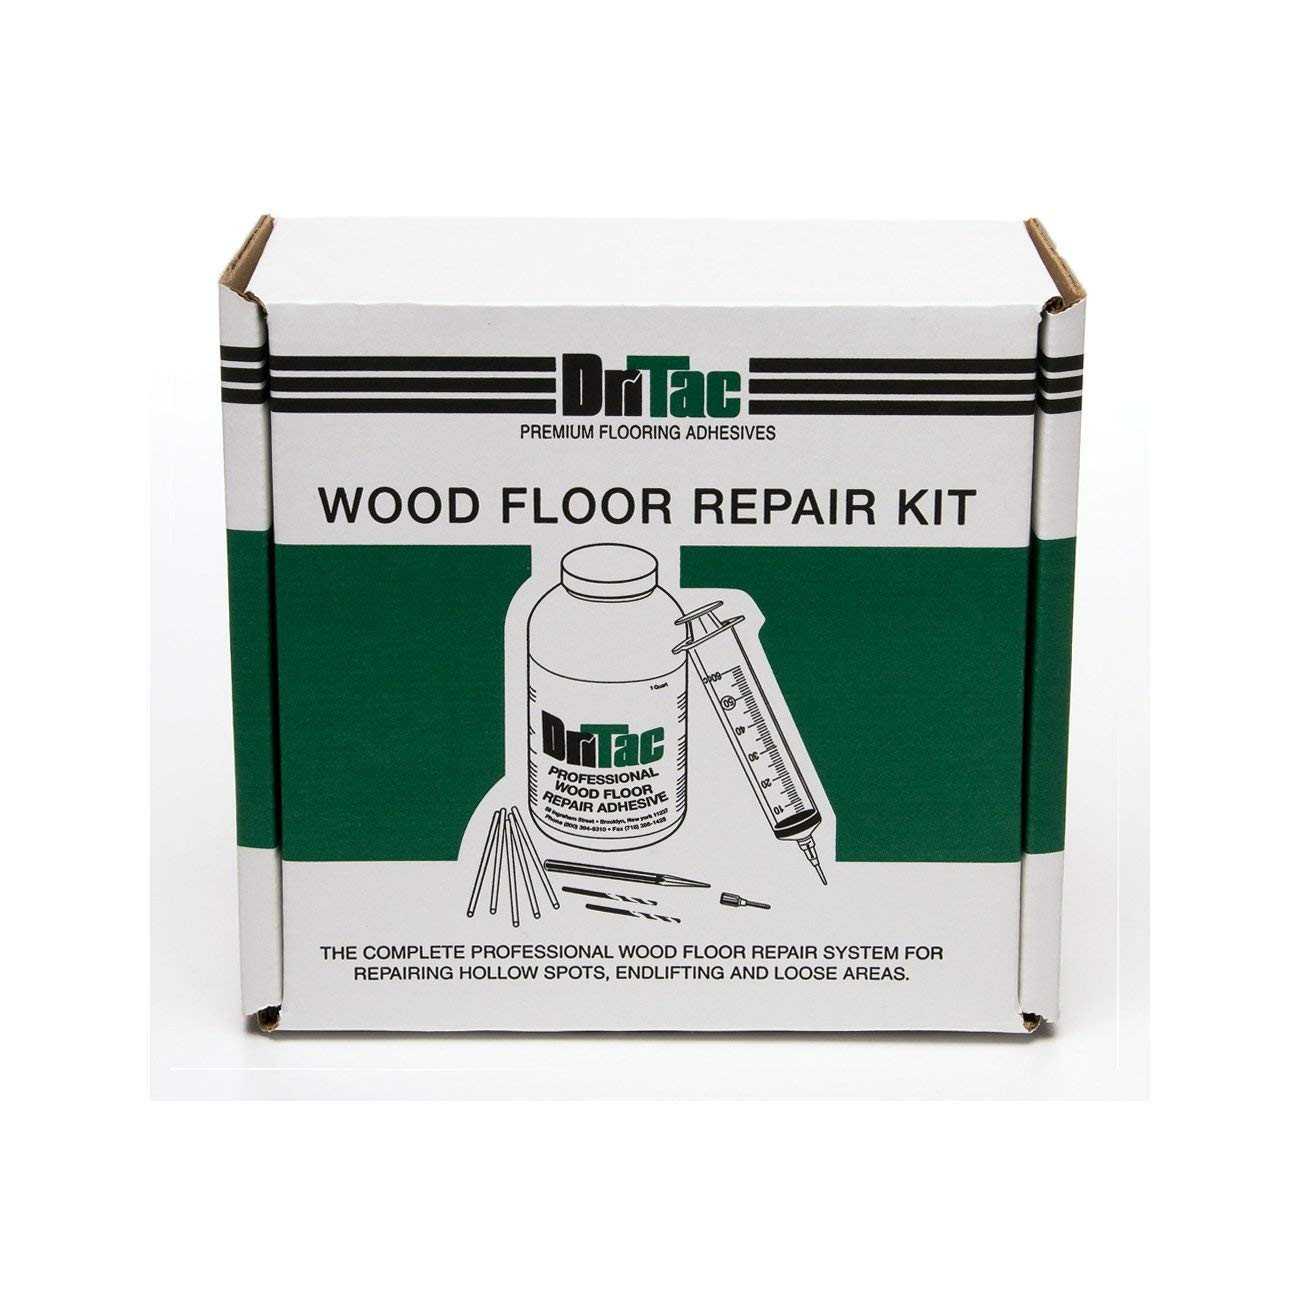 hardwood floor repair tampa of amazon com dritac wood floor repair kit engineered flooring only within amazon com dritac wood floor repair kit engineered flooring only 32oz home kitchen